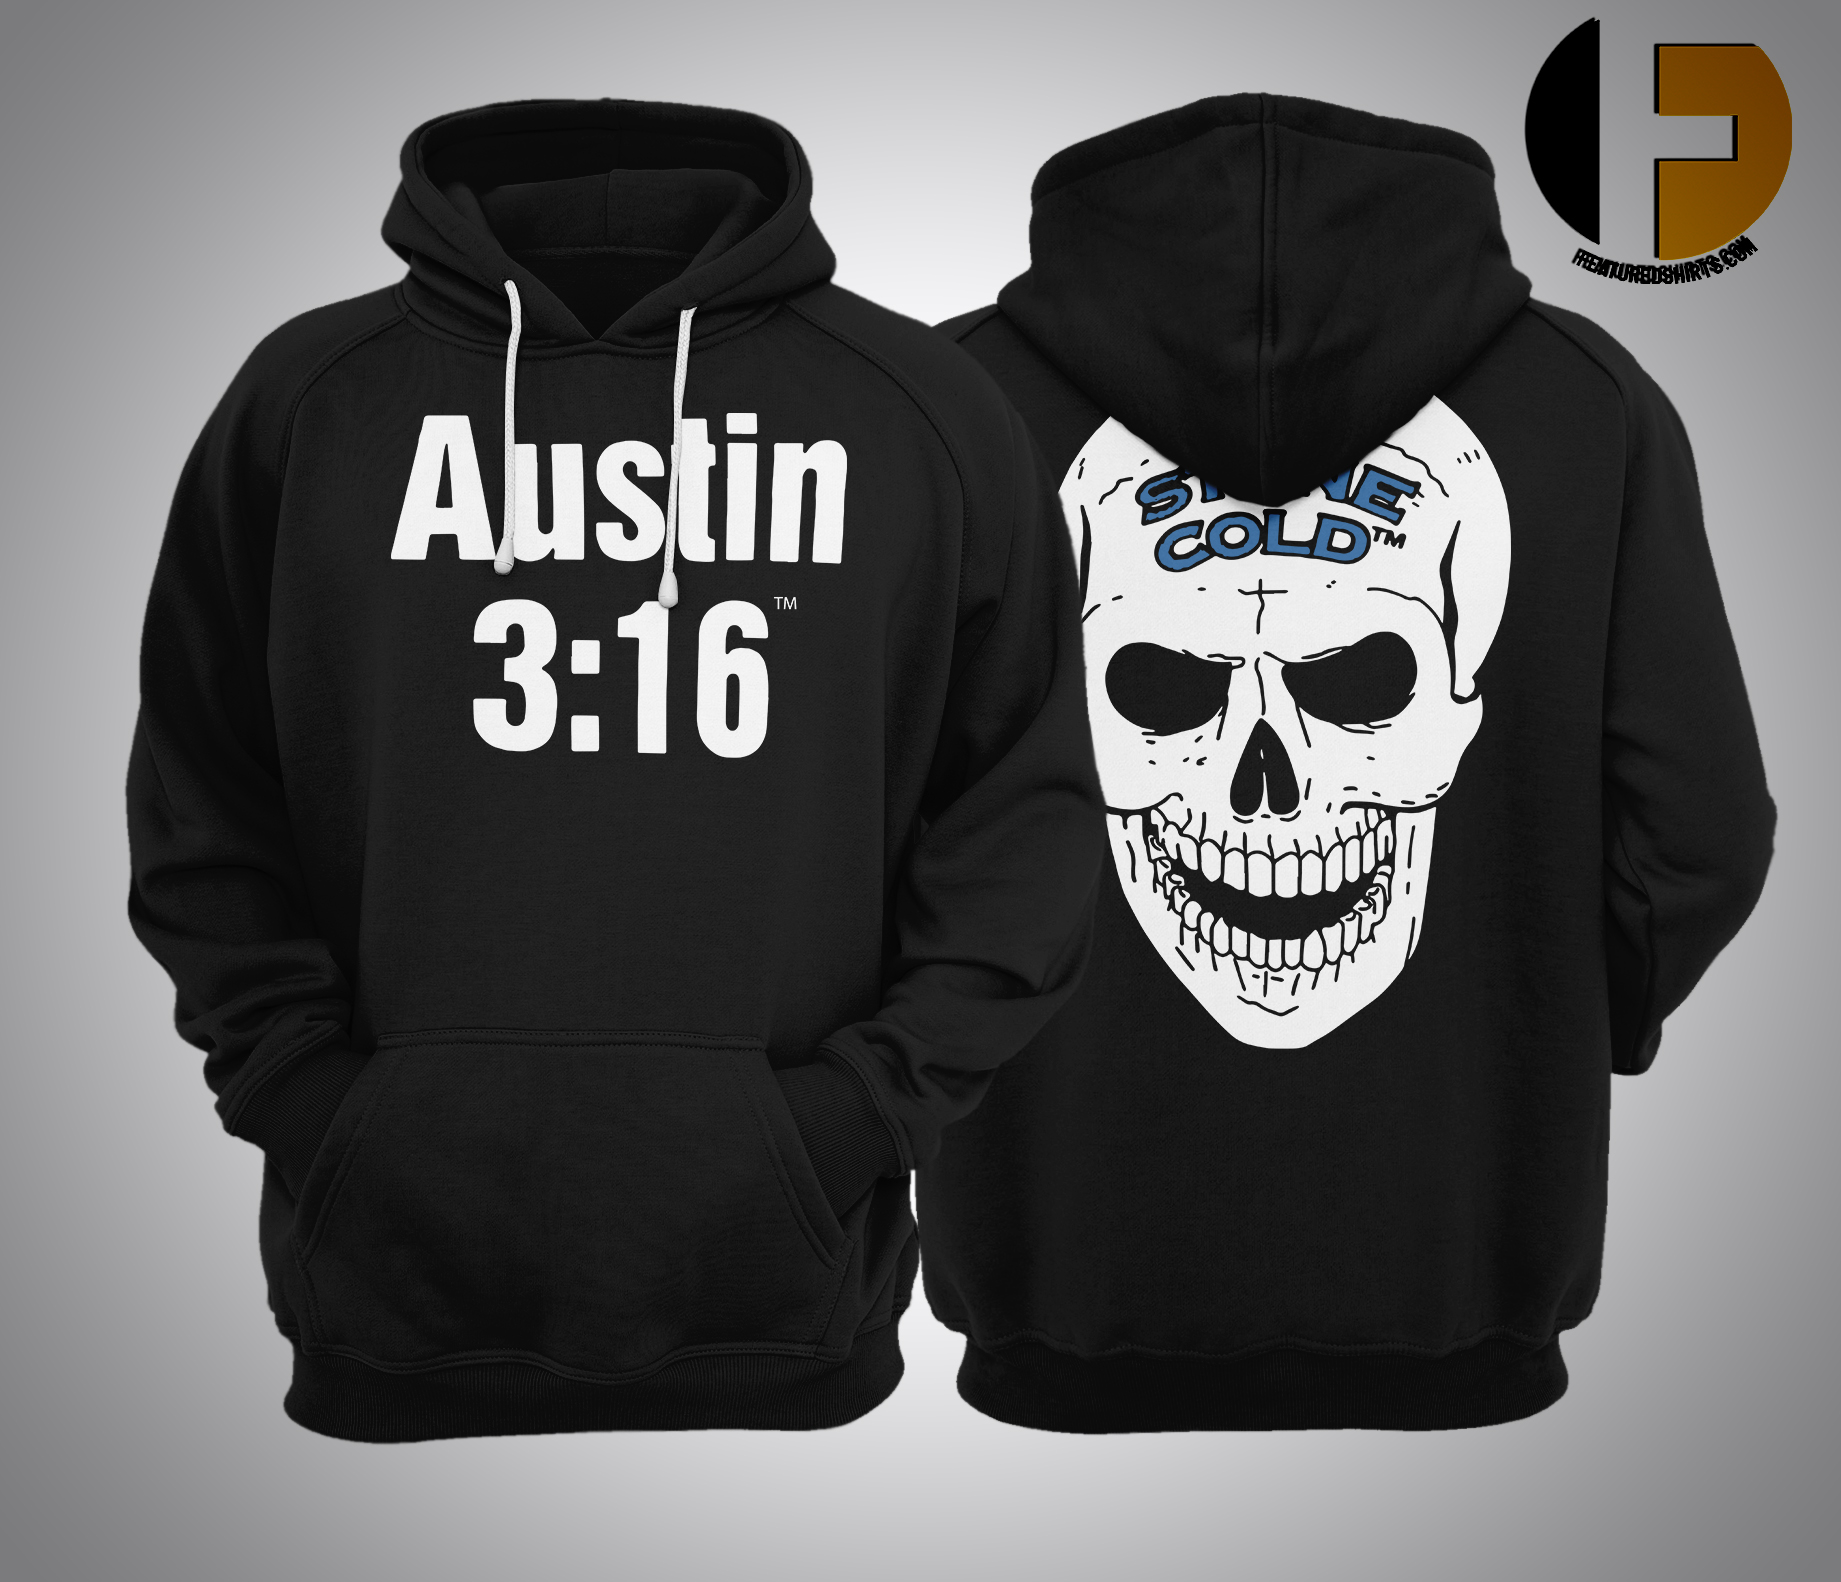 316 Day Stone Cold Steve Austin 3 16 Hoodie316 Day Stone Cold Steve Austin 3 16 Hoodie